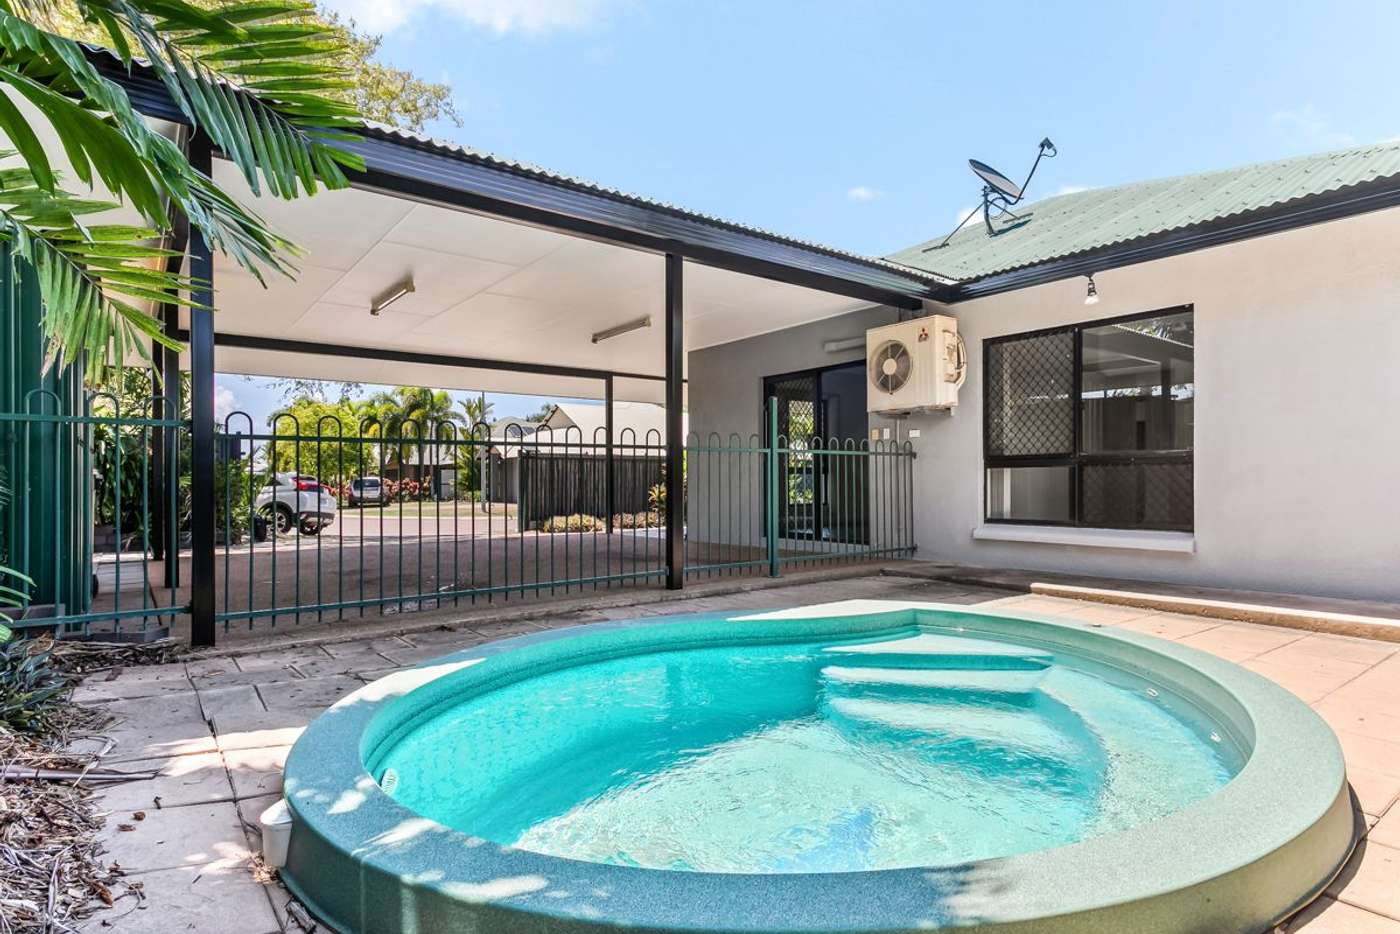 Main view of Homely house listing, 2 Broadbent Street, Parap NT 820